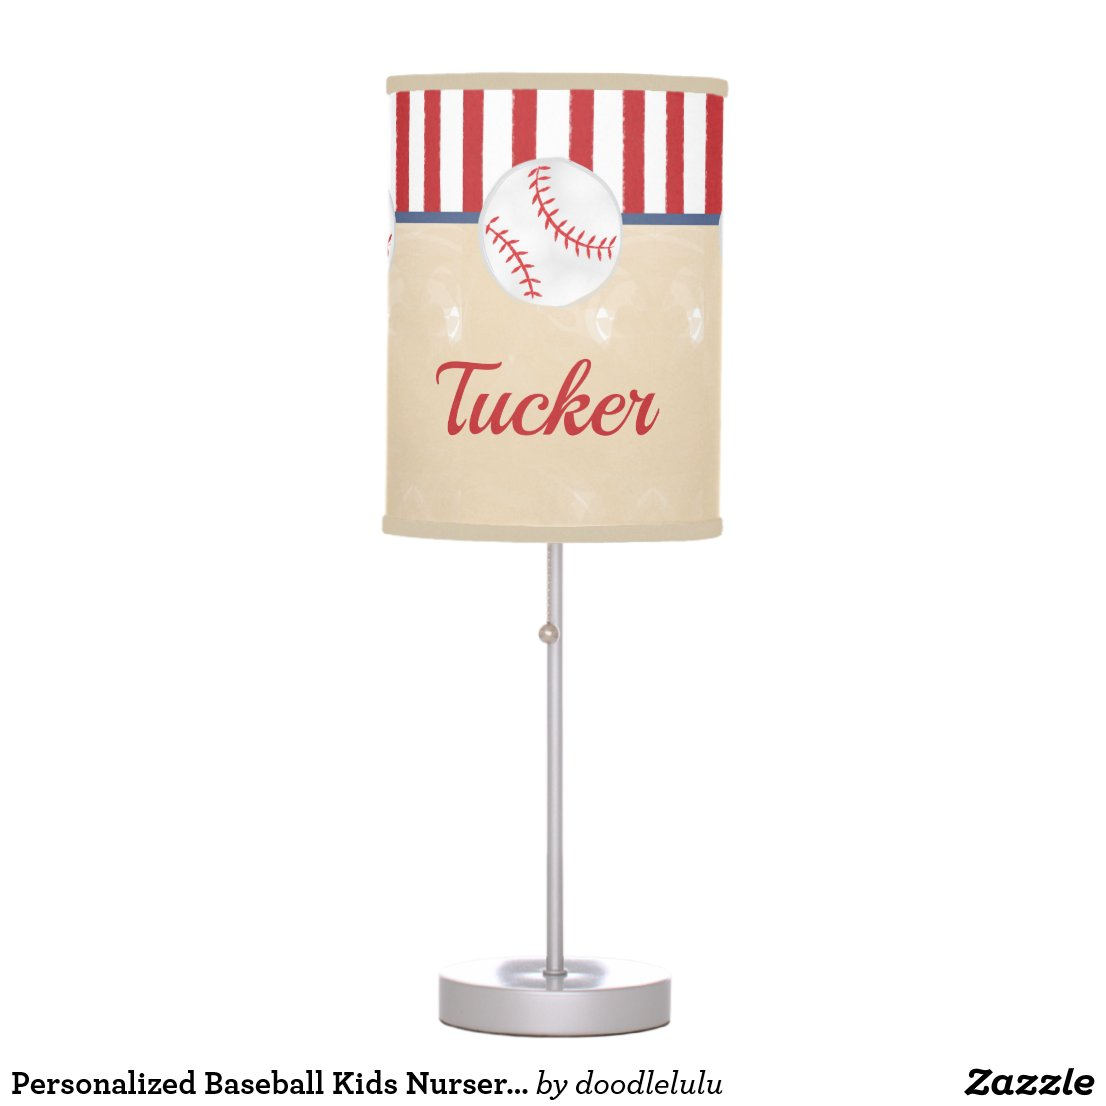 Personalized Baseball Kids Nursery Bedroom Decor Desk Lamp